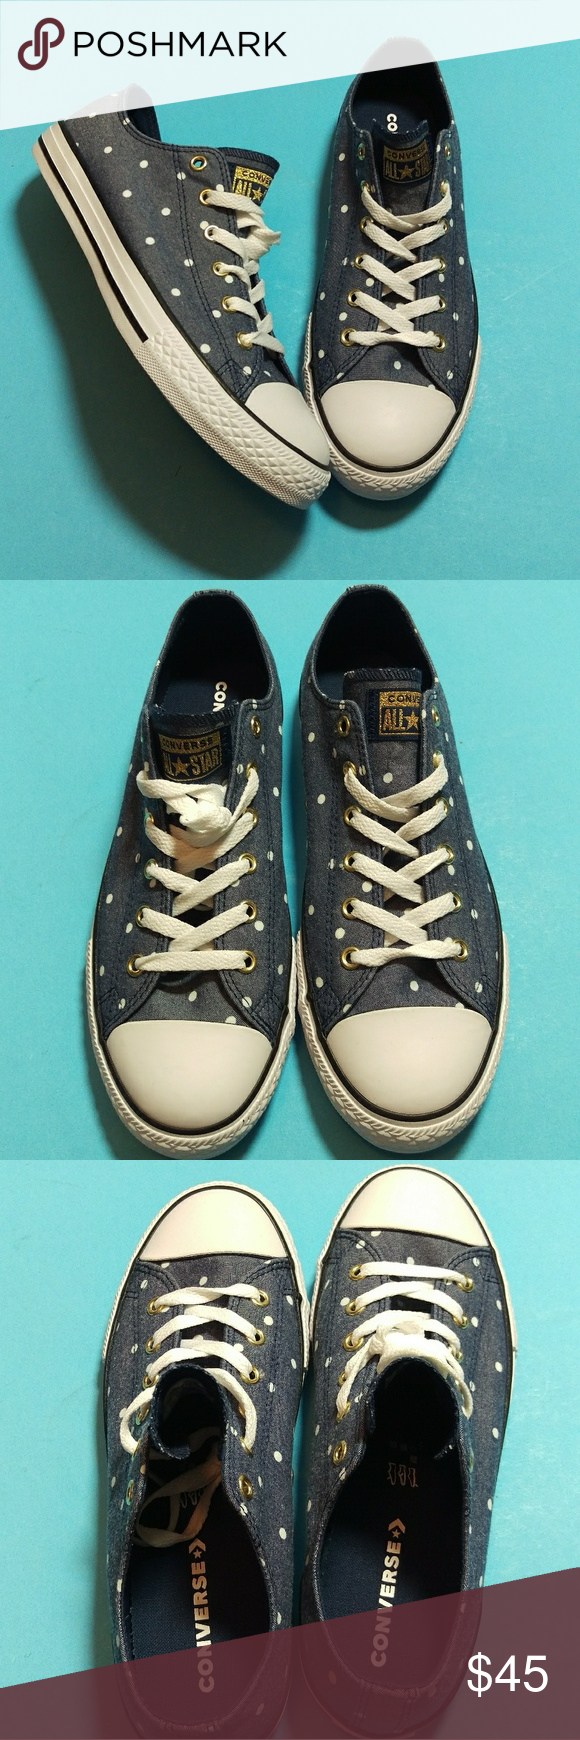 New Kids Converse Sneakers Does NOT